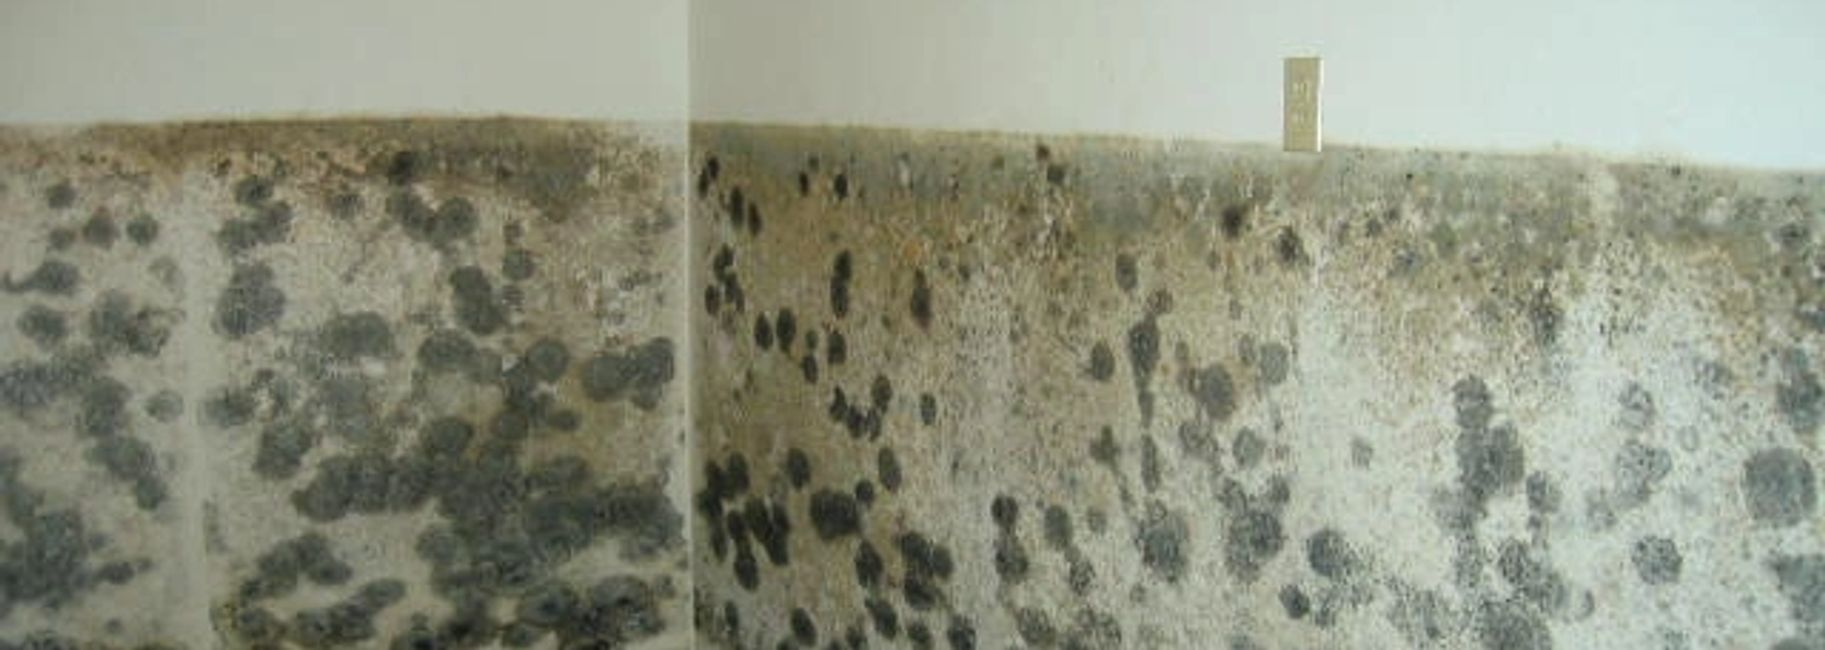 Mold in a house.